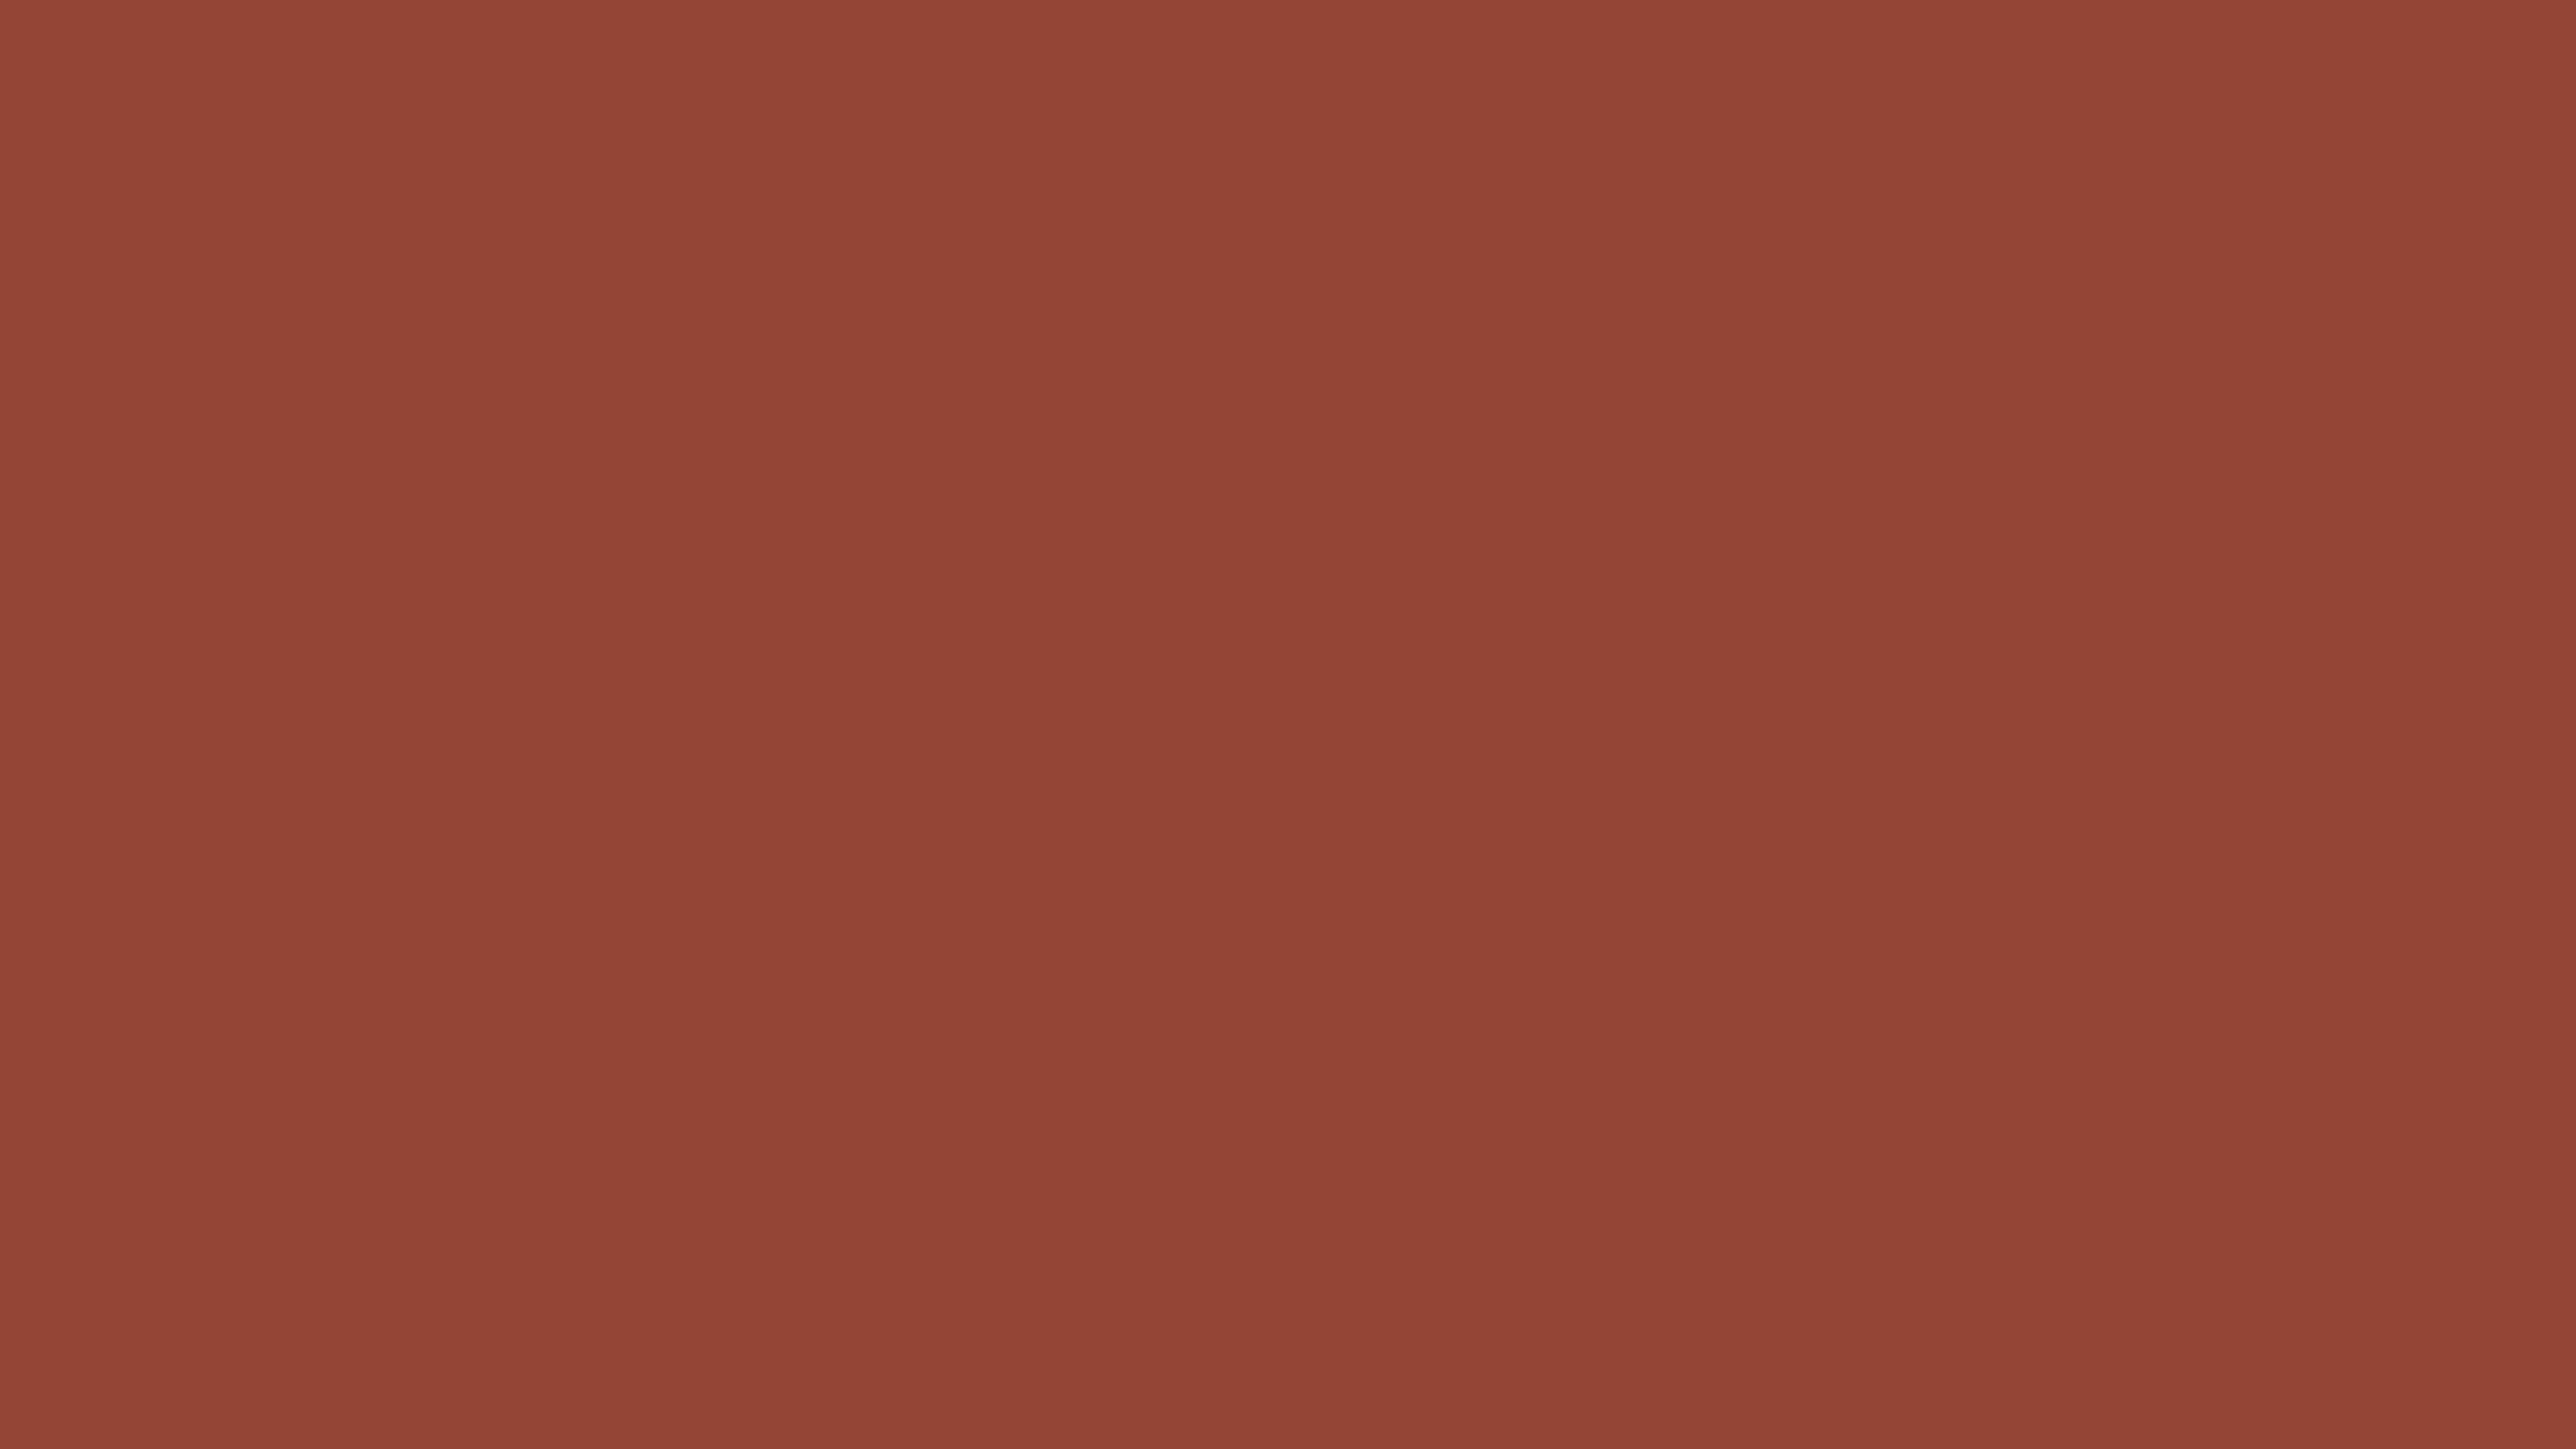 4096x2304 Chestnut Solid Color Background